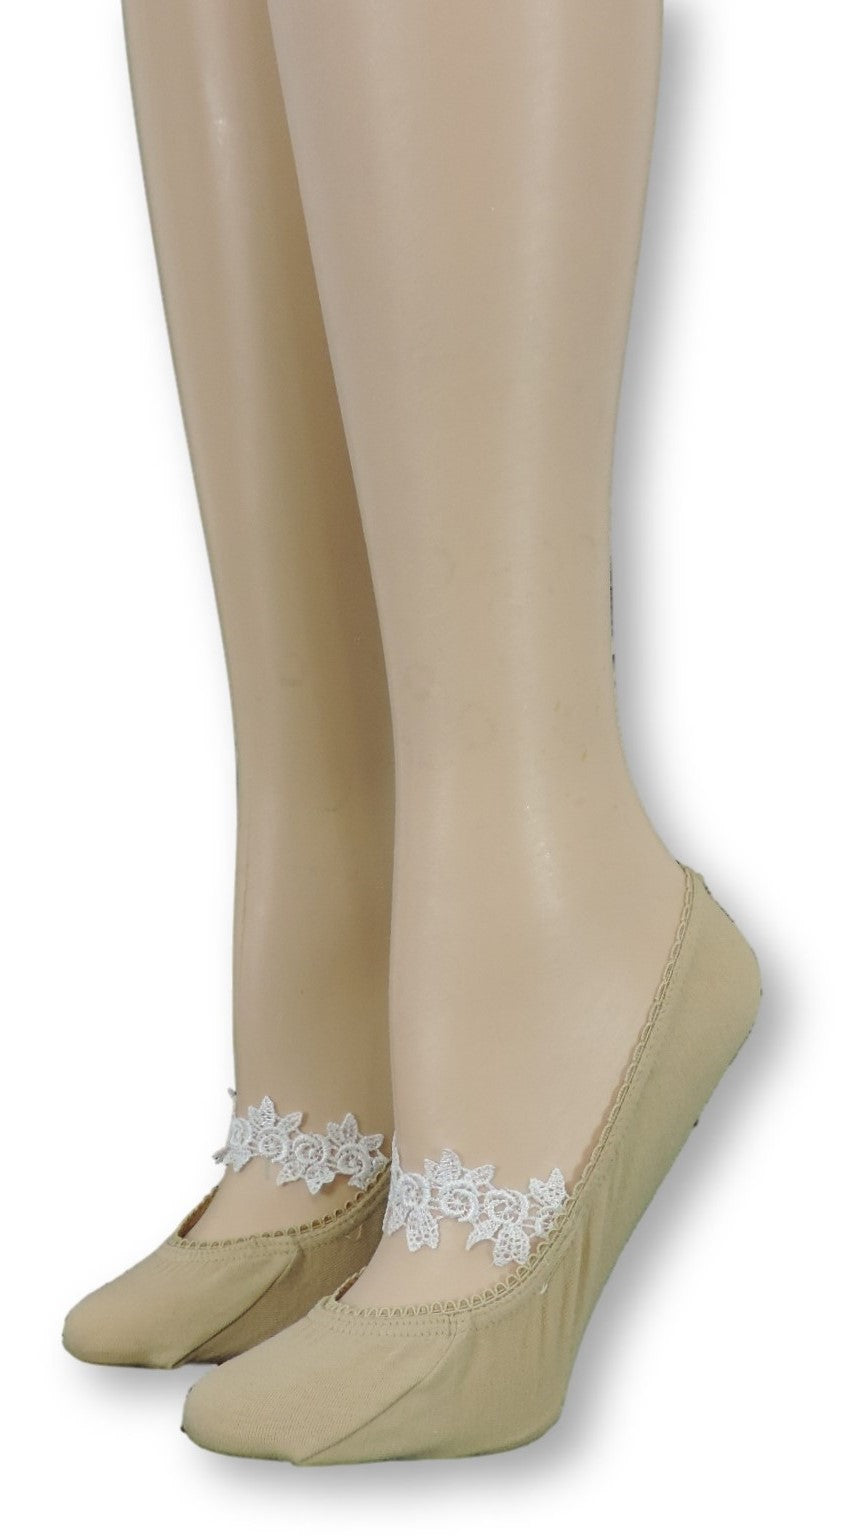 Beige Ankle Socks with Floral Lace - Global Trendz Fashion®